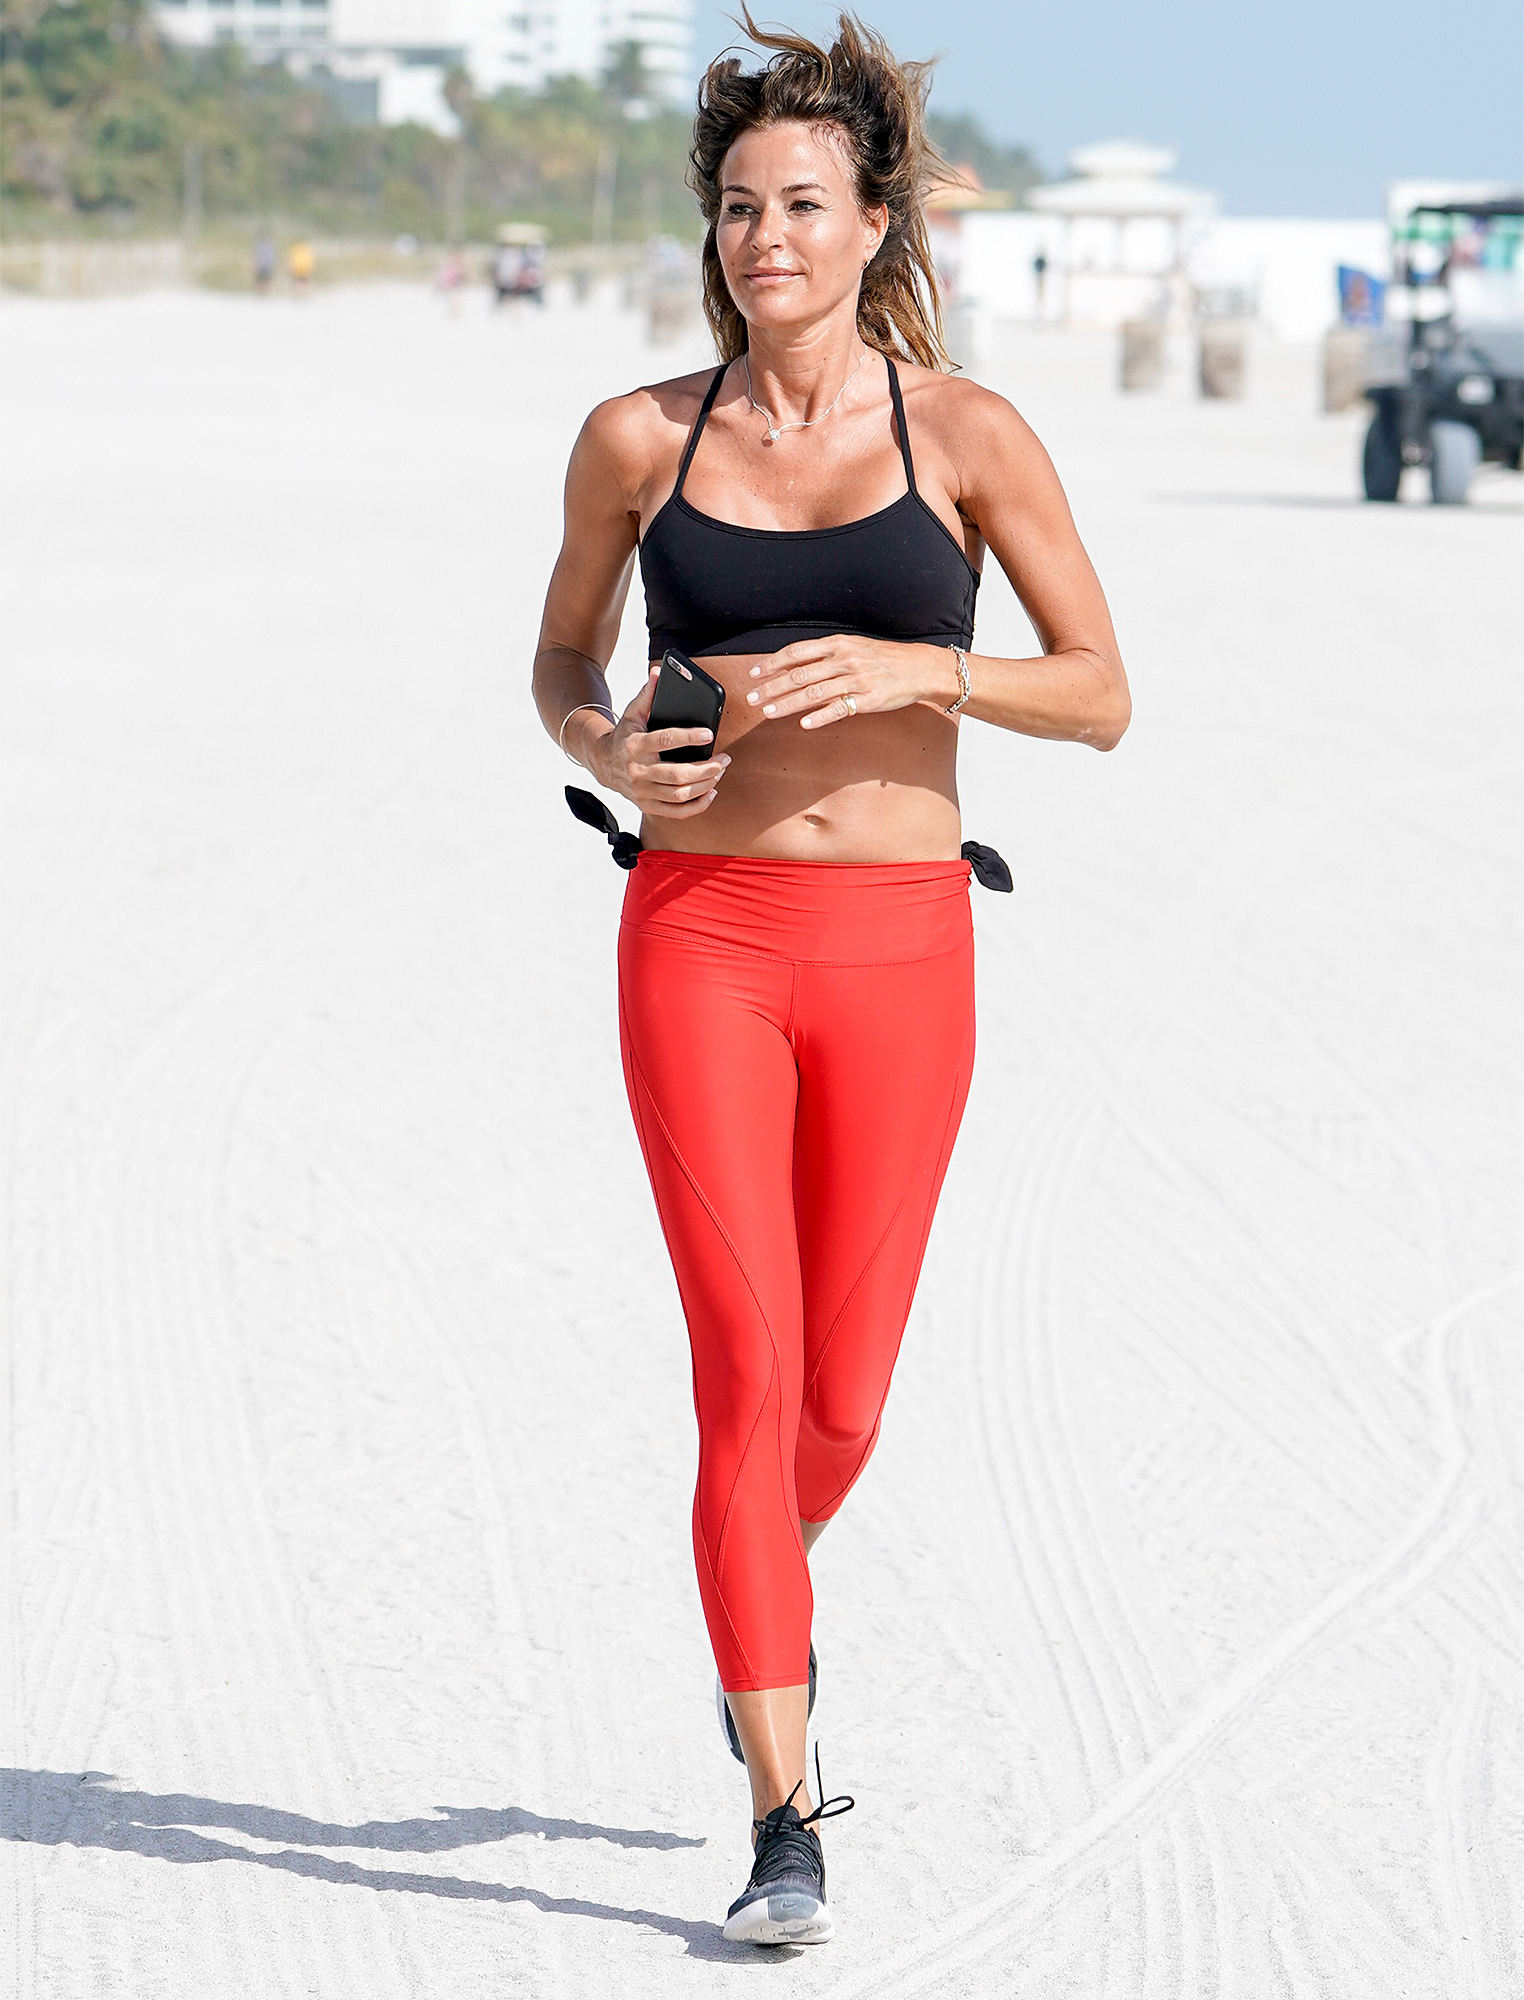 Kelly Bensimon Is Seen During A Run Along The Beach In Miami